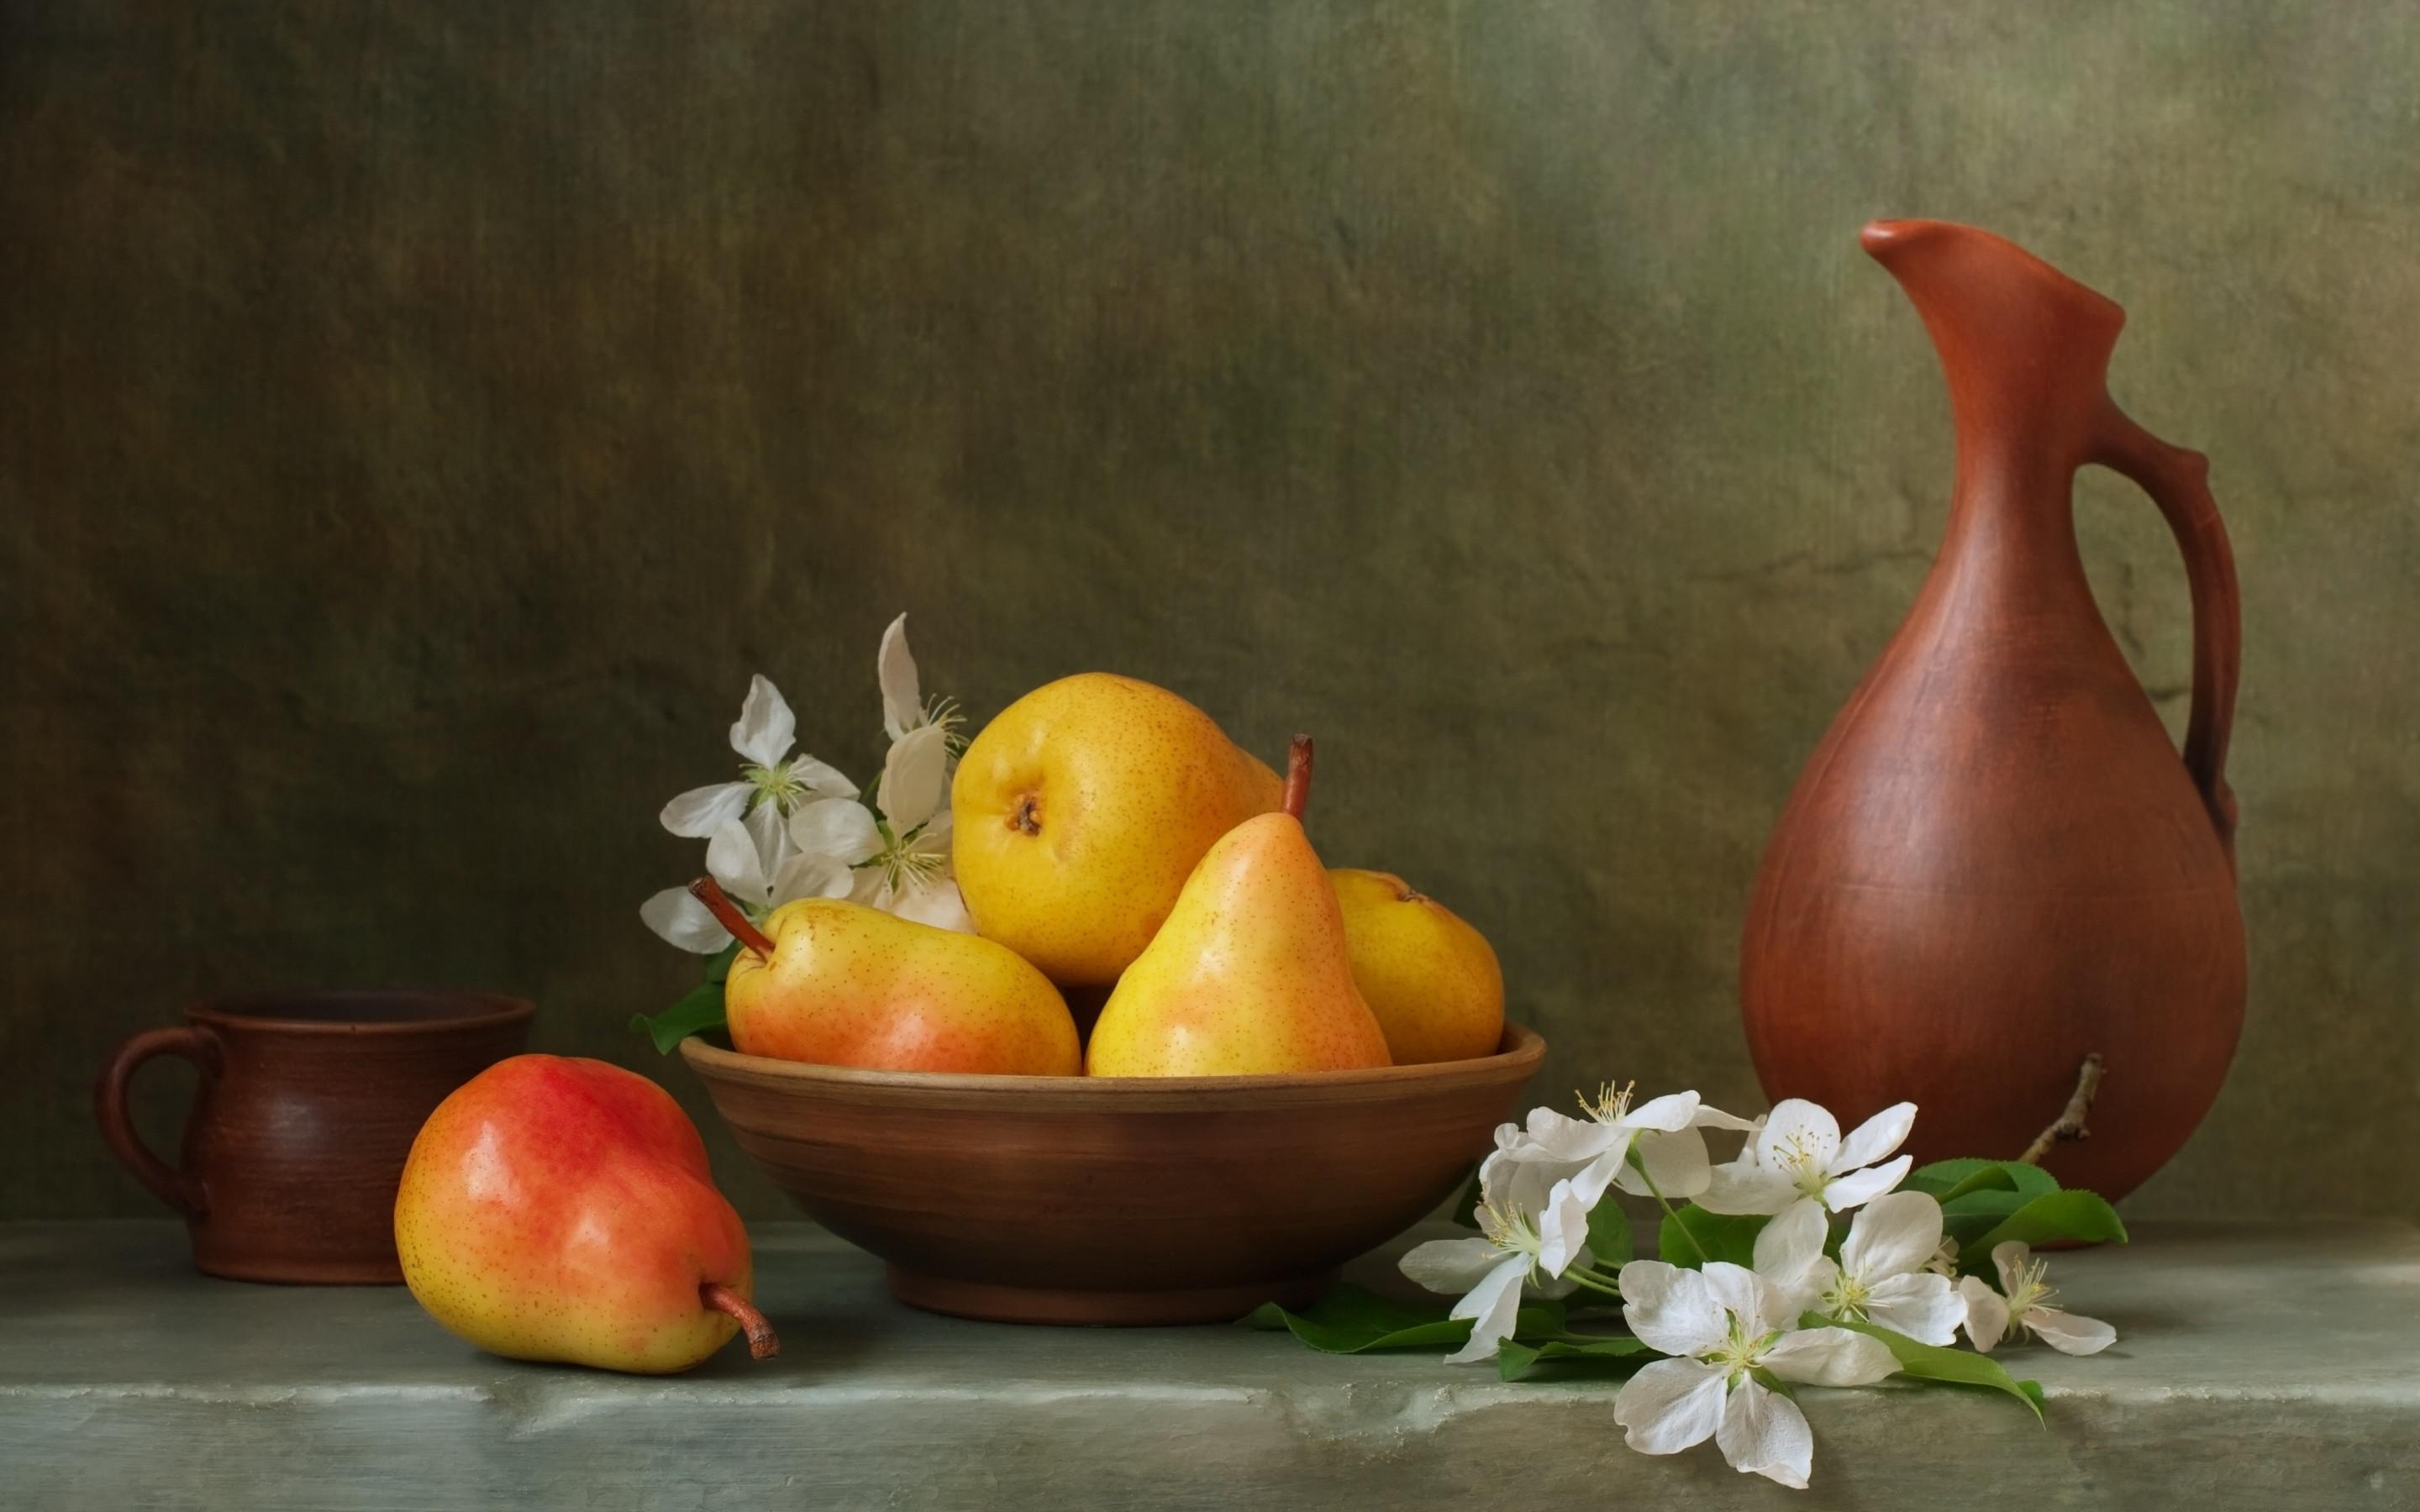 Still Life Backgrounds on Wallpapers Vista